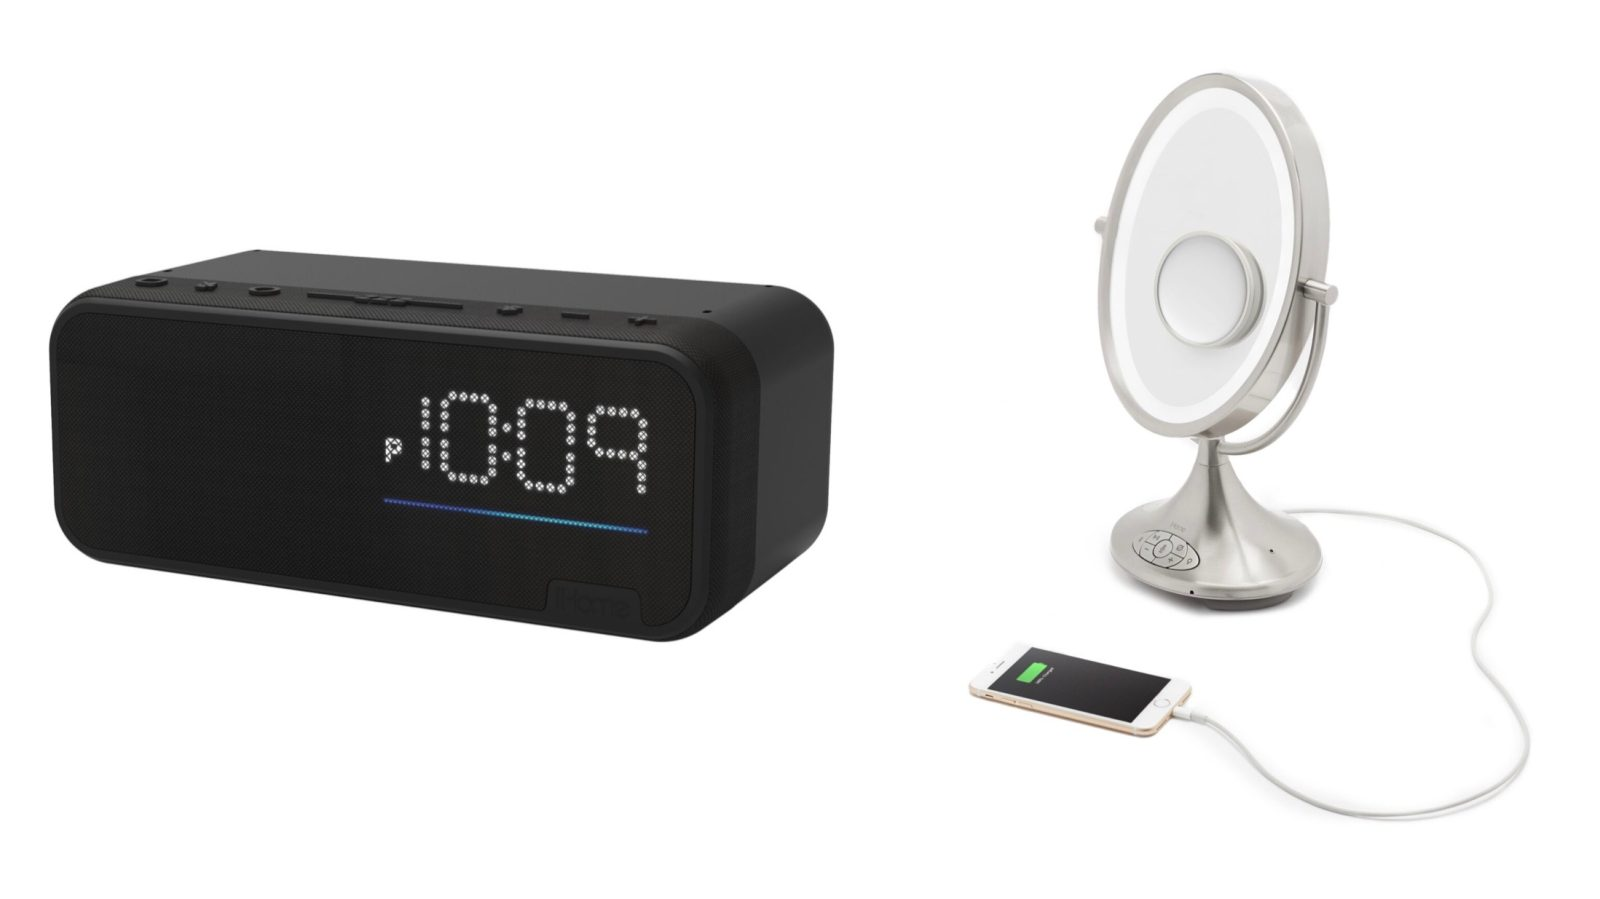 Prime Ihome Launches Alexa Enabled Vanity Mirror And Bedside Alarm Download Free Architecture Designs Rallybritishbridgeorg